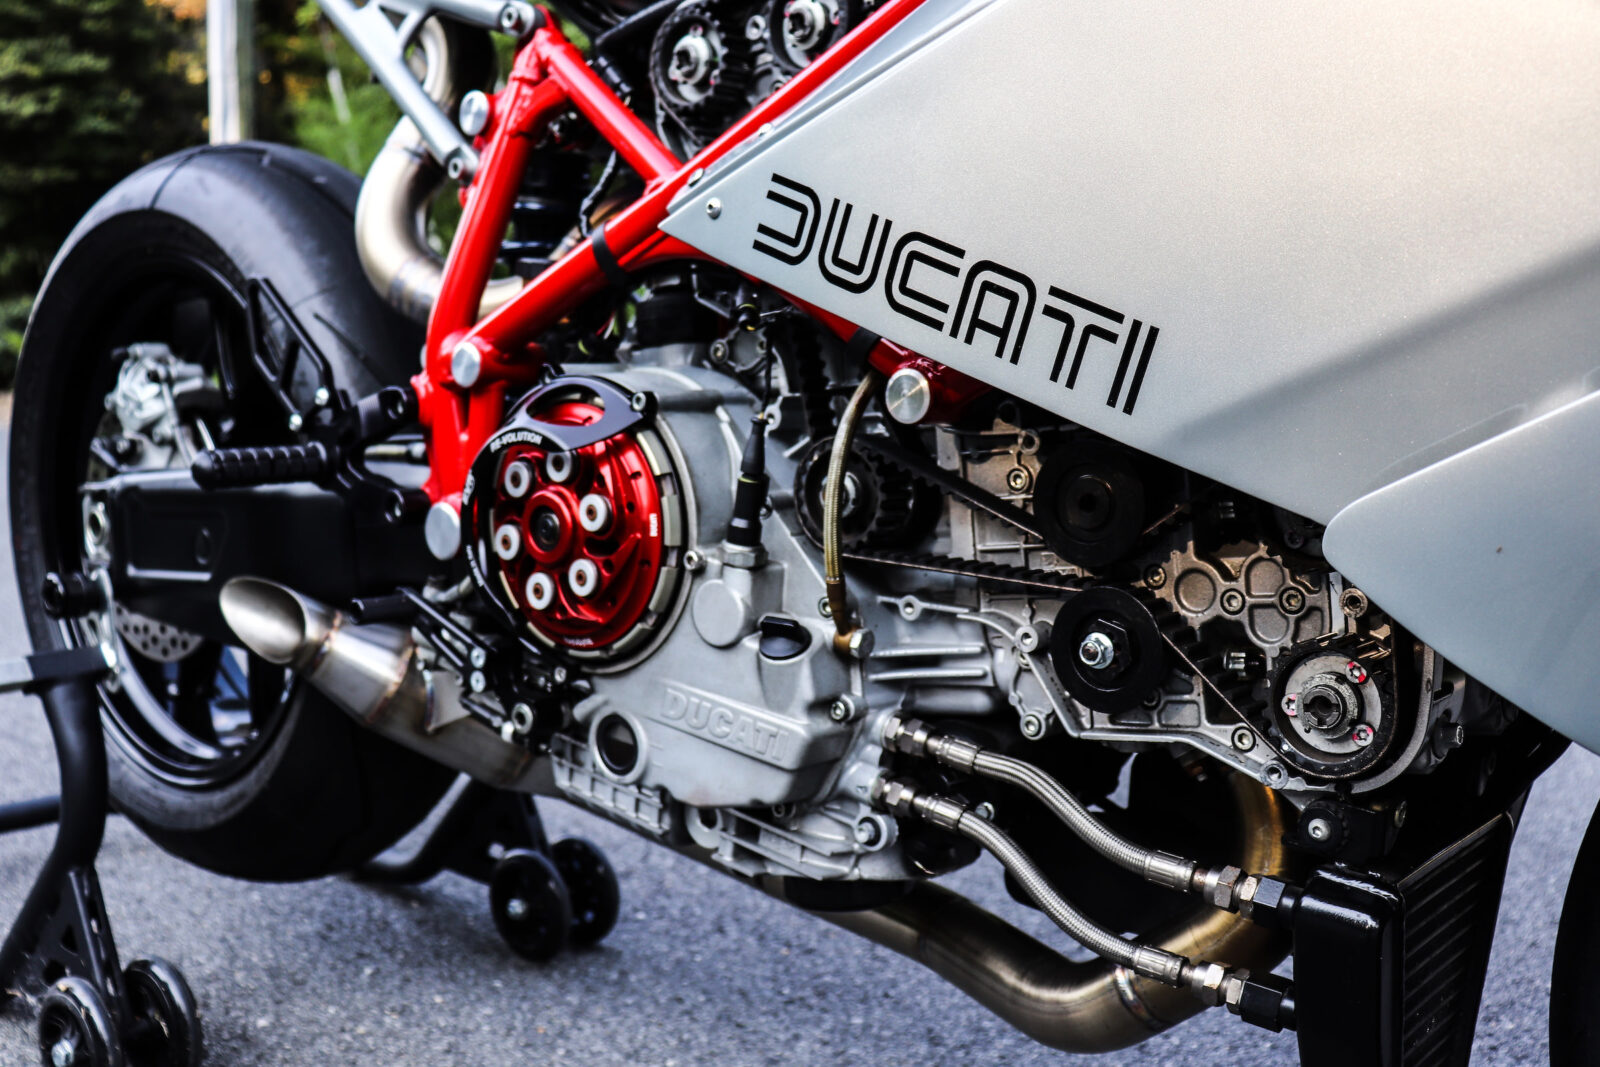 The Jett Design x Motorelic Ducati 749 Custom Racer